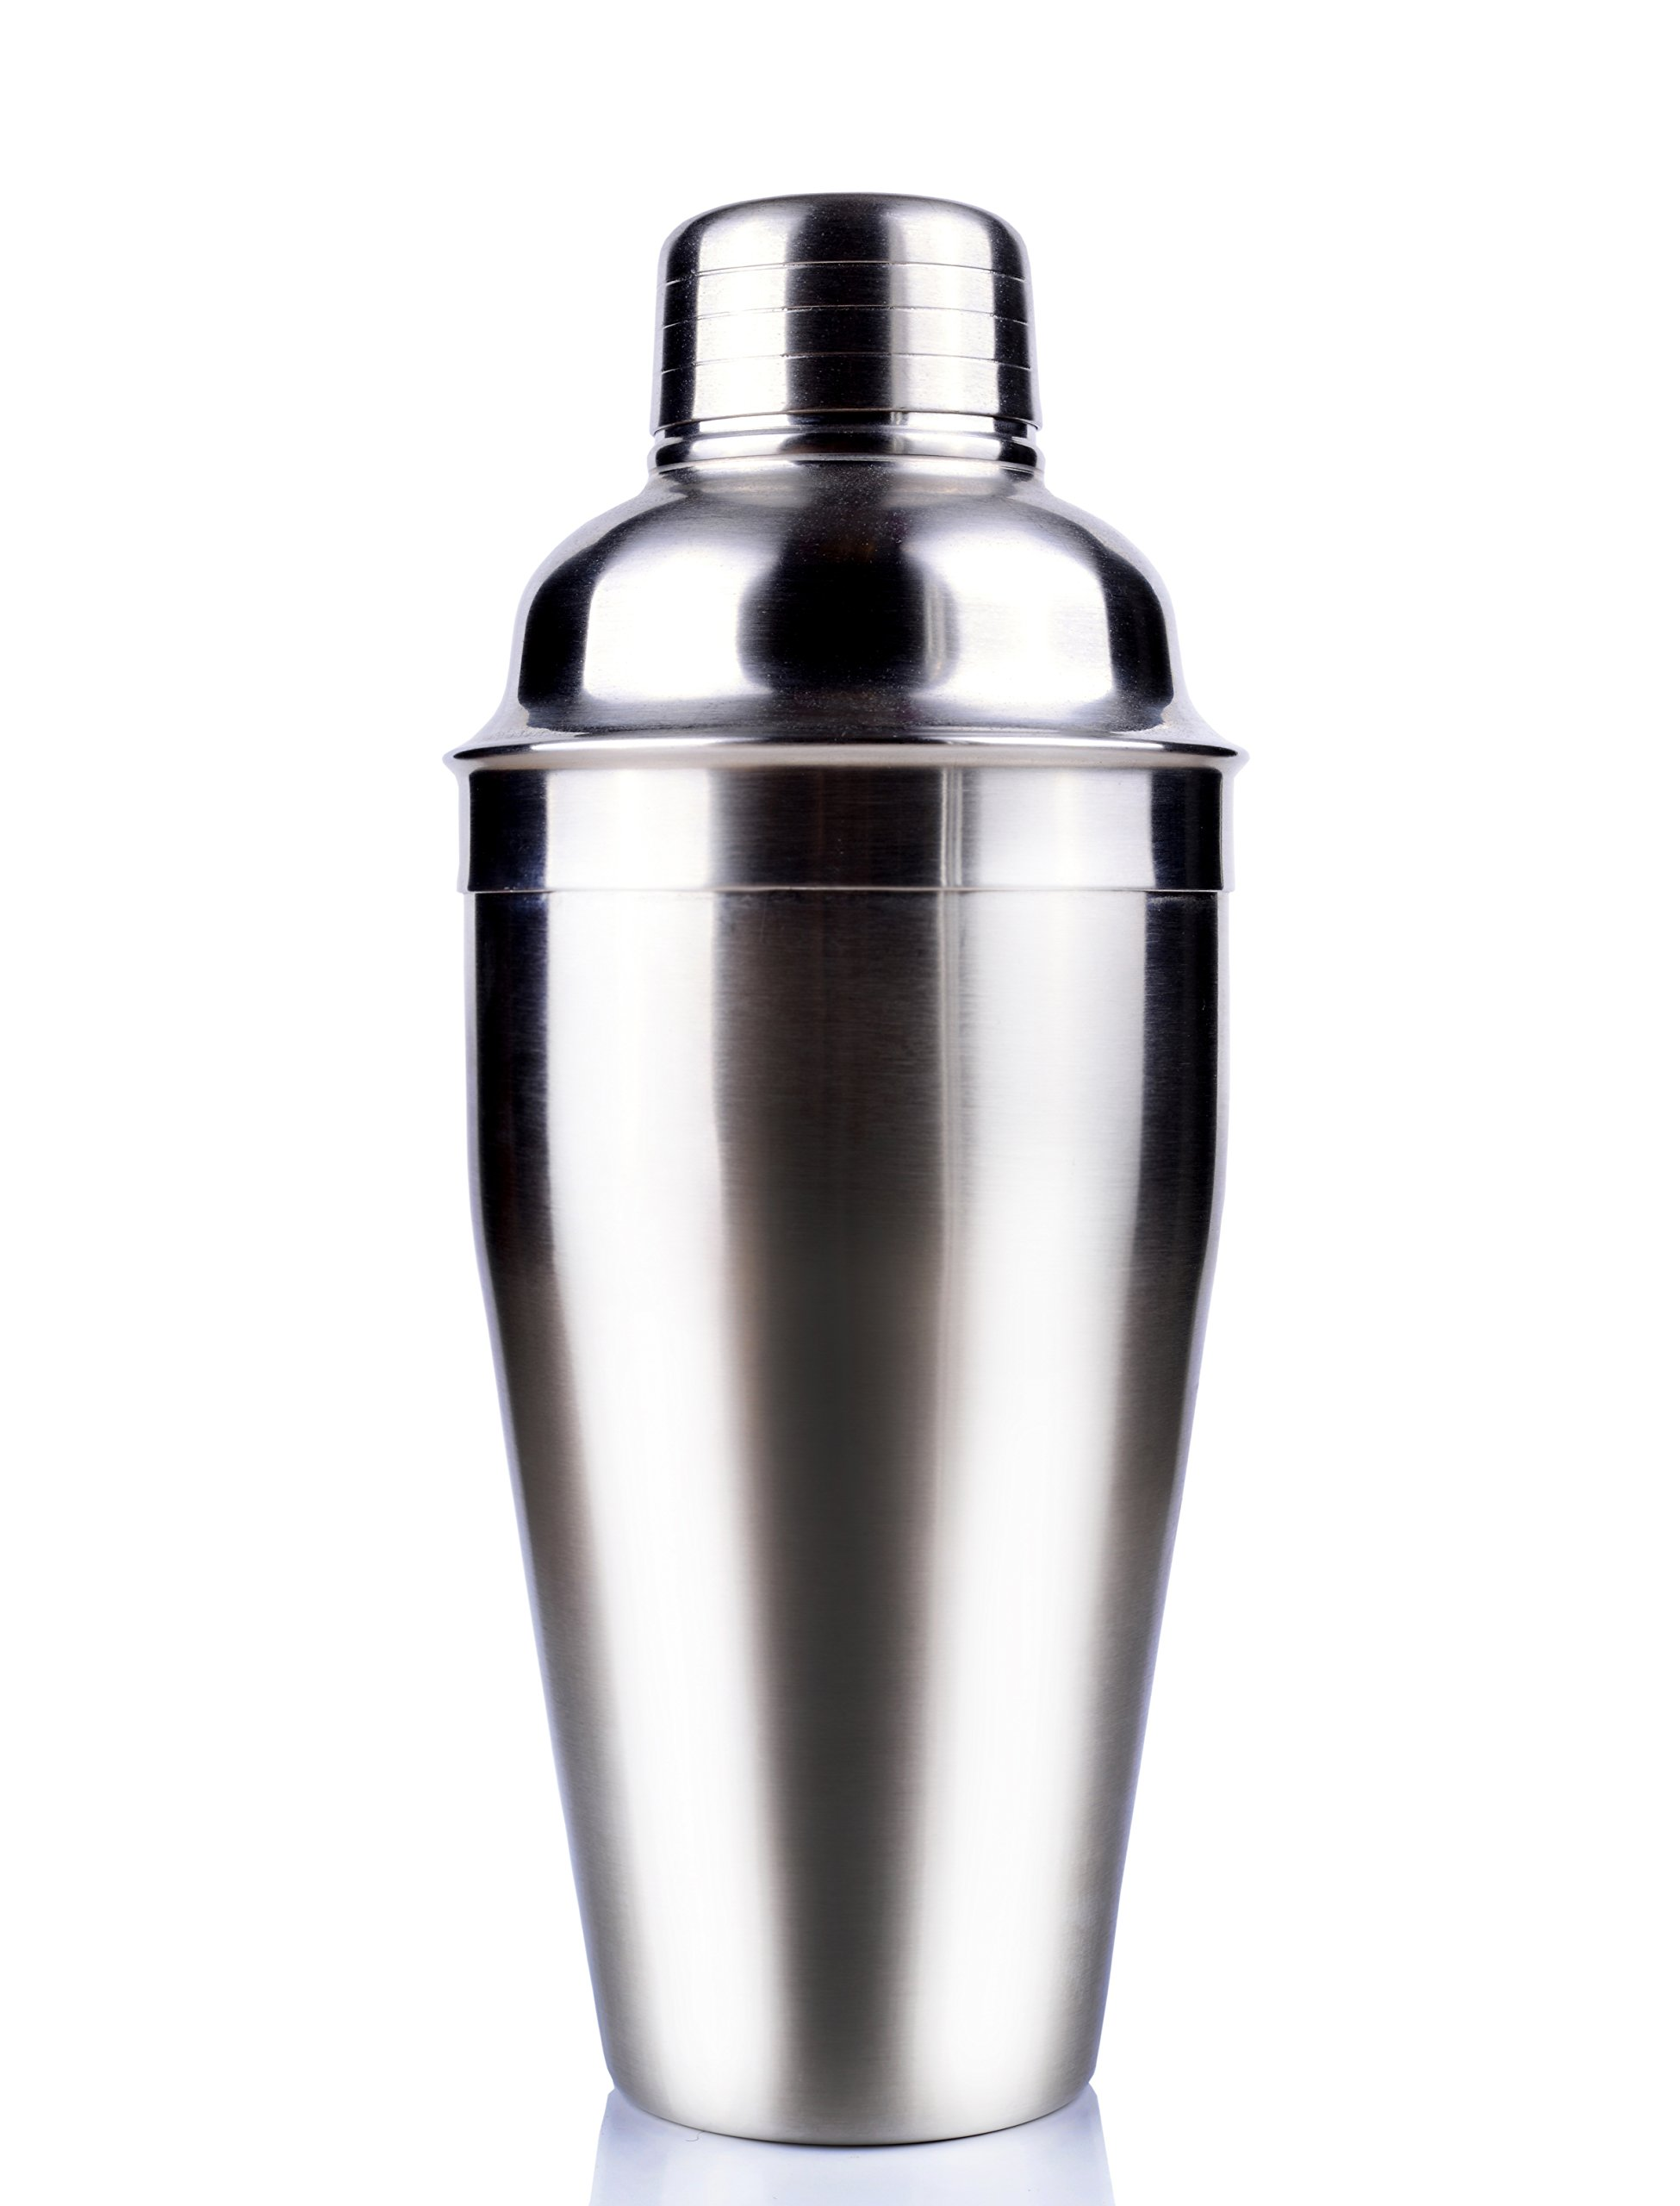 HIC Cocktail Shaker, Stainless Steel, Mirror Finish, 3-Piece Set, 18-Ounces